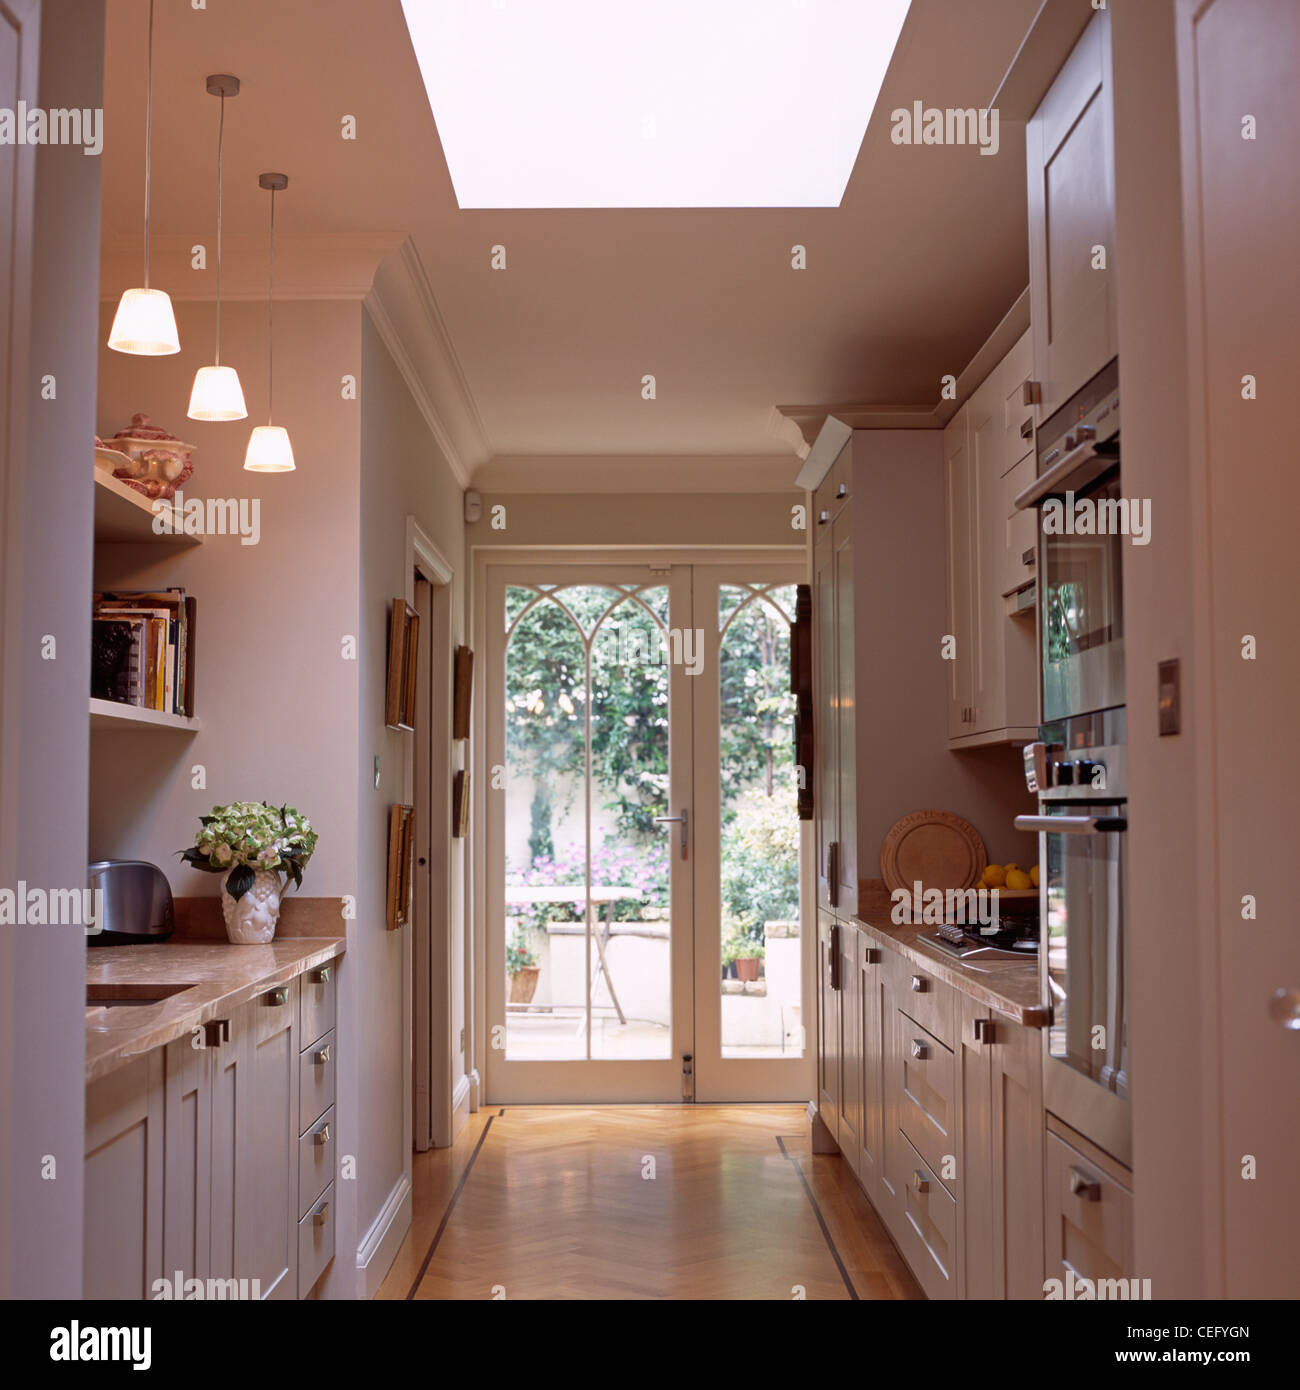 galley kitchen design small white galley kitchen white galley kitchen white wooden galley kitchen small marble top kitchen island